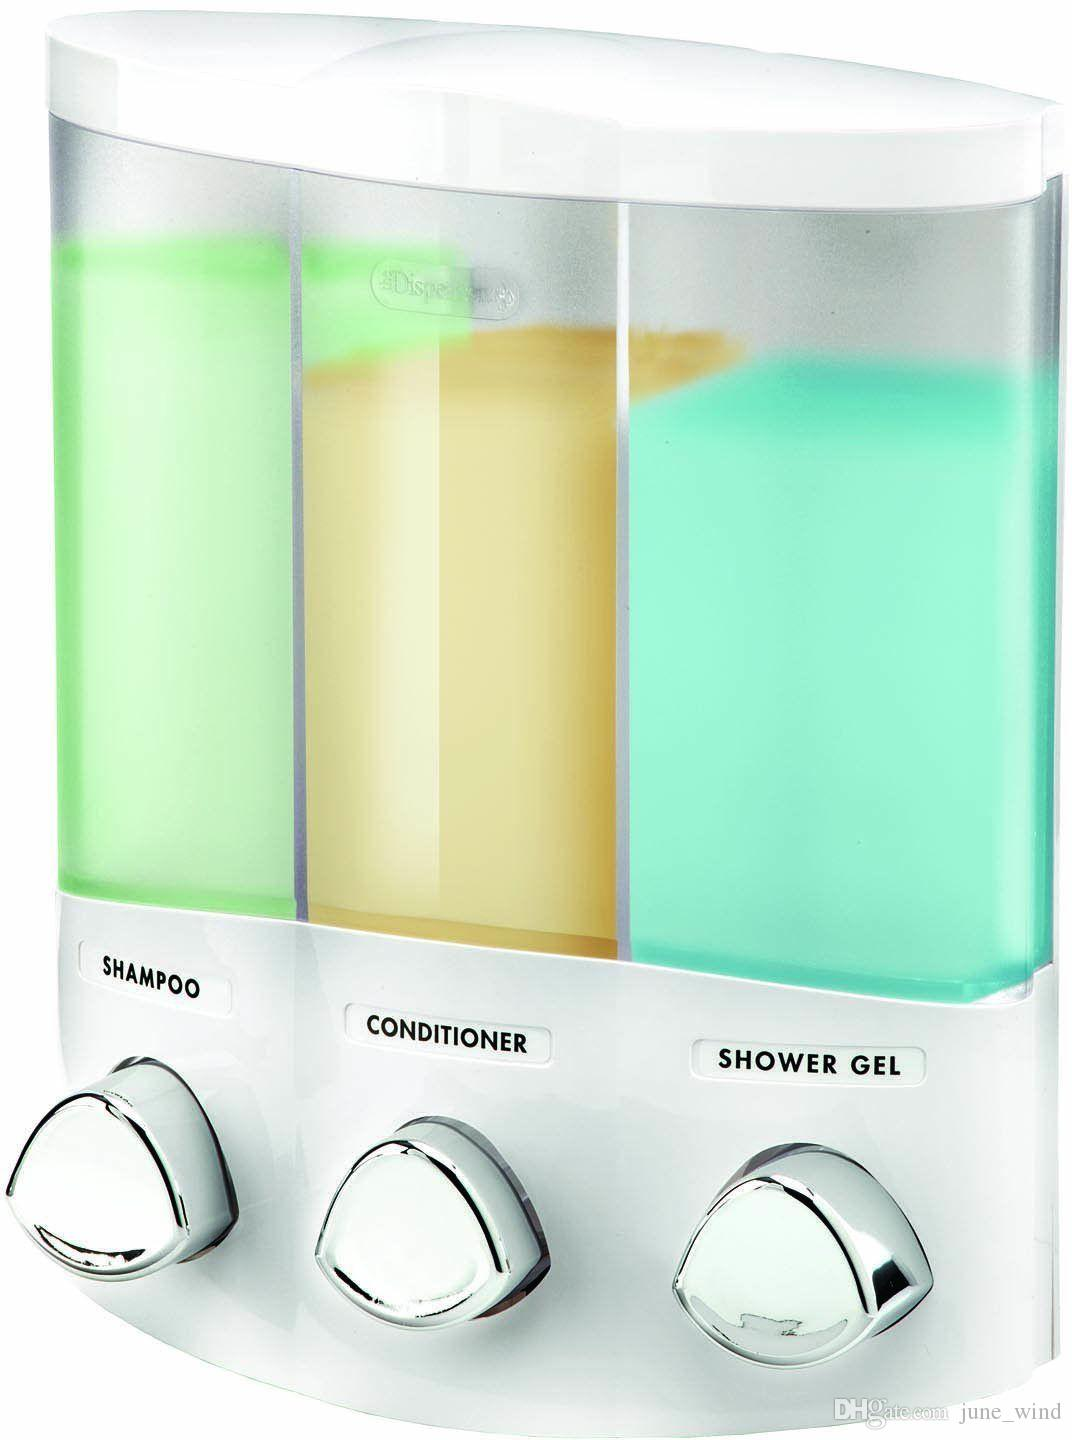 Euro Series AVIVA TRIO Bath Soap Shampoo U0026 Conditioner Shower Bathroom  Dispenser Liquid Soap Dispenser Bathroom Dispenser Online With $29.51/Piece  On ...